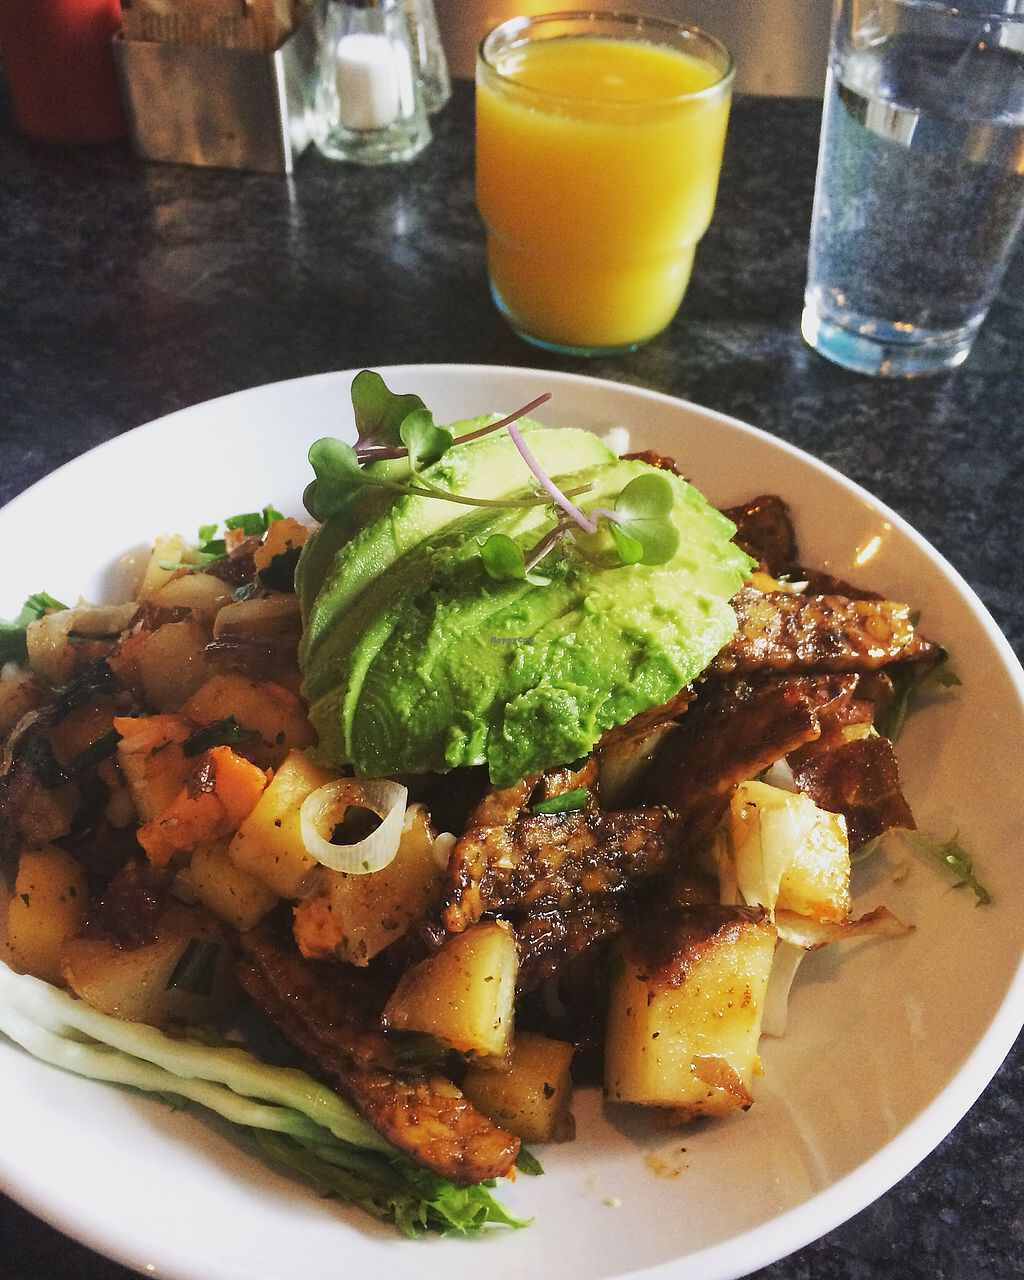 """Photo of Over Easy Cafe  by <a href=""""/members/profile/Brizzy09"""">Brizzy09</a> <br/>Seasonal veggie root hash with tempeh and avocado <br/> September 1, 2017  - <a href='/contact/abuse/image/3183/299585'>Report</a>"""